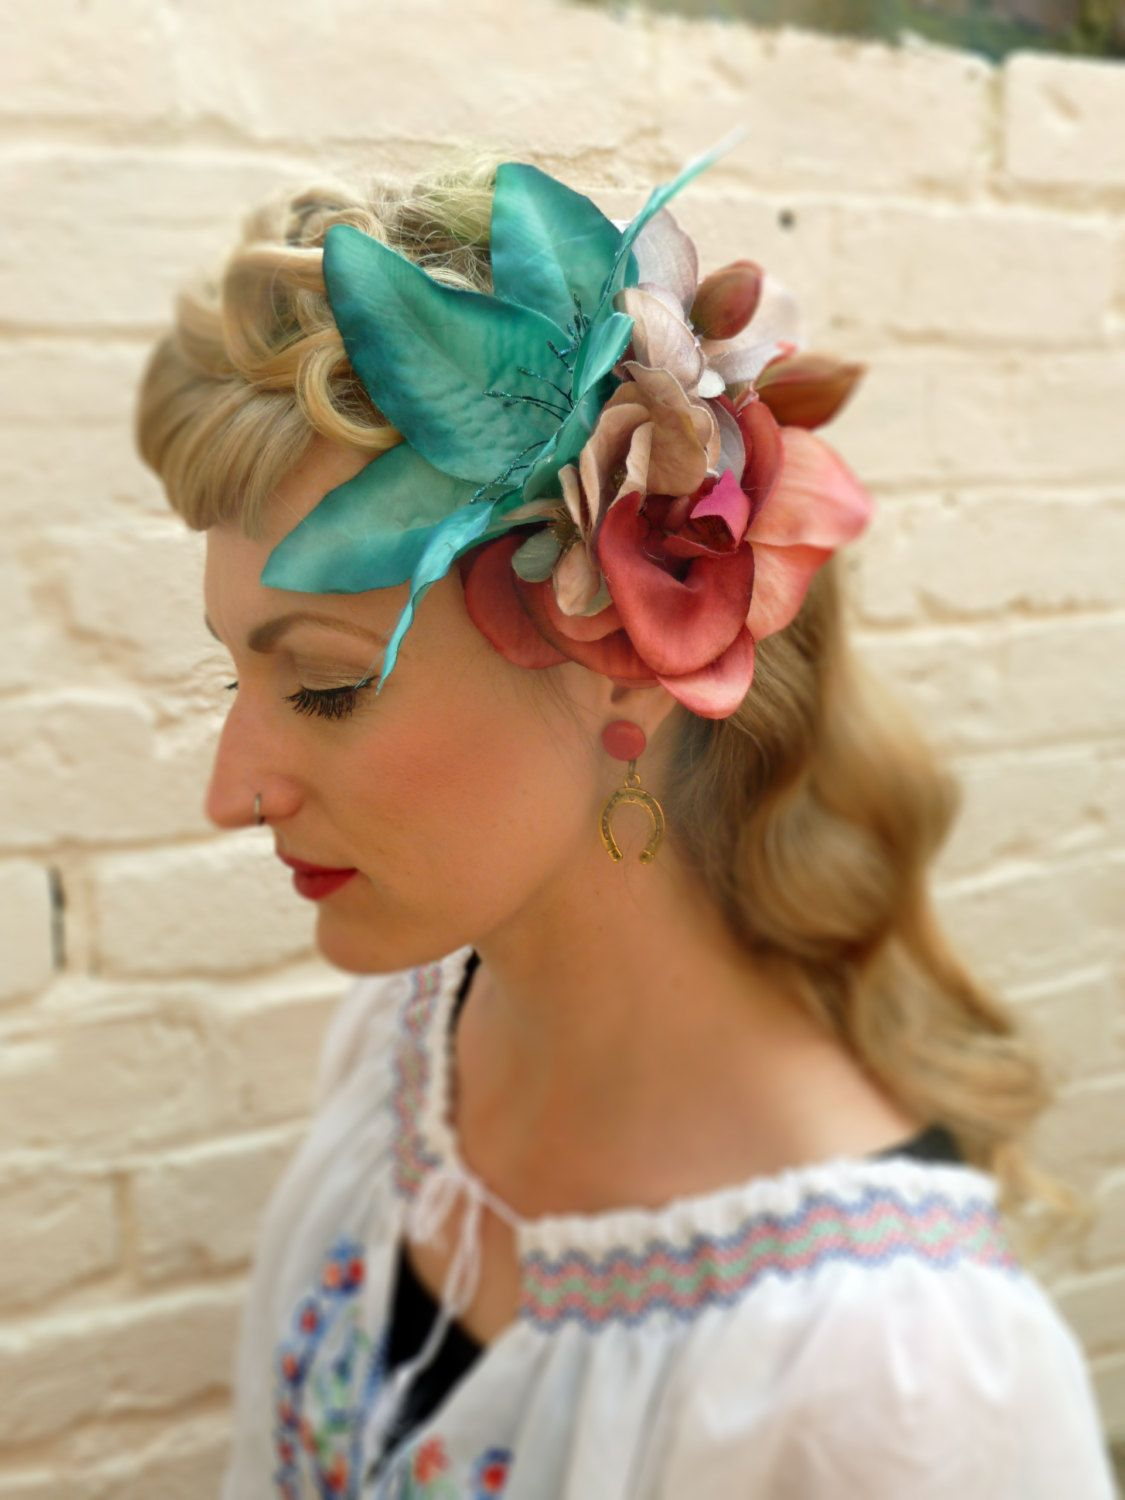 111452c323 The 'Luana' - large teal and dusty pink lily and orchid hair flower  fascinator, 40s 50s pin up vintage style by PinUpCurl on Etsy